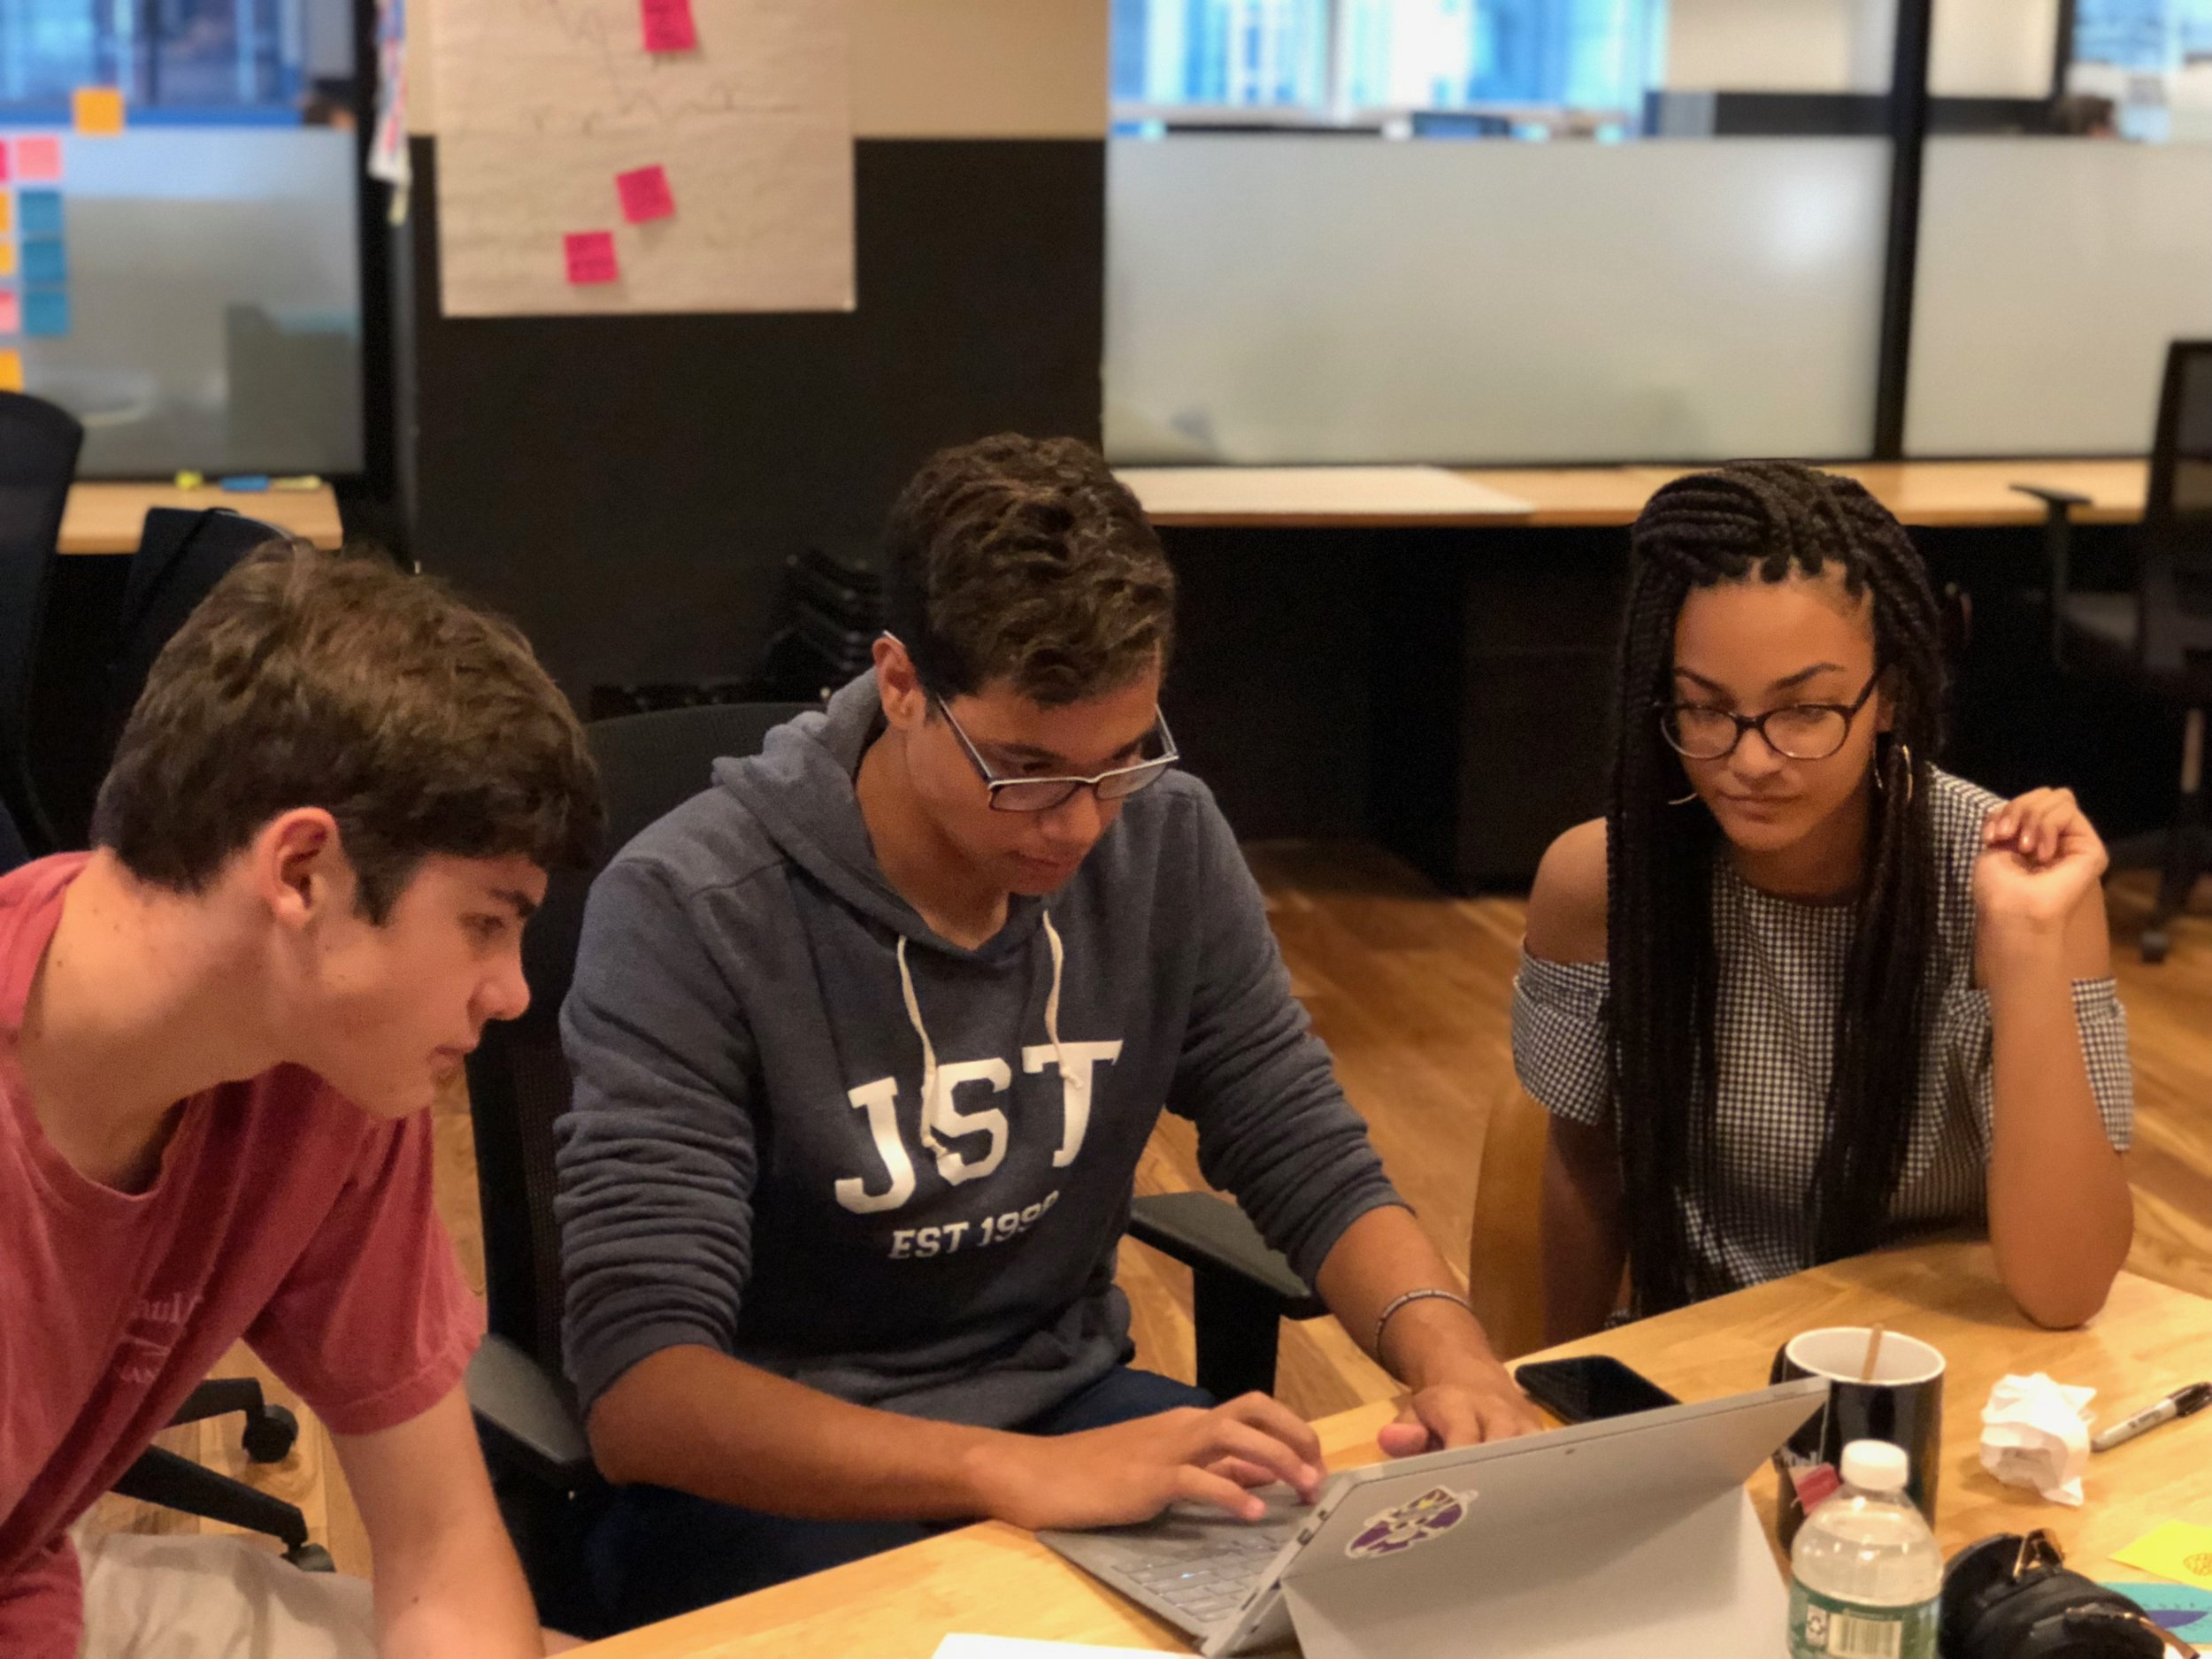 A moment from  Expeditionaries  July 2018, which took place in WeWork W. 57th Street. Students from Fordham Prep and Bishop Kearney worked in separate teams, but on a regular basis would provide one another feedback and push one another's learning. WeWork's flexible co-working space could just as easily be a school's flexible co-learning space…